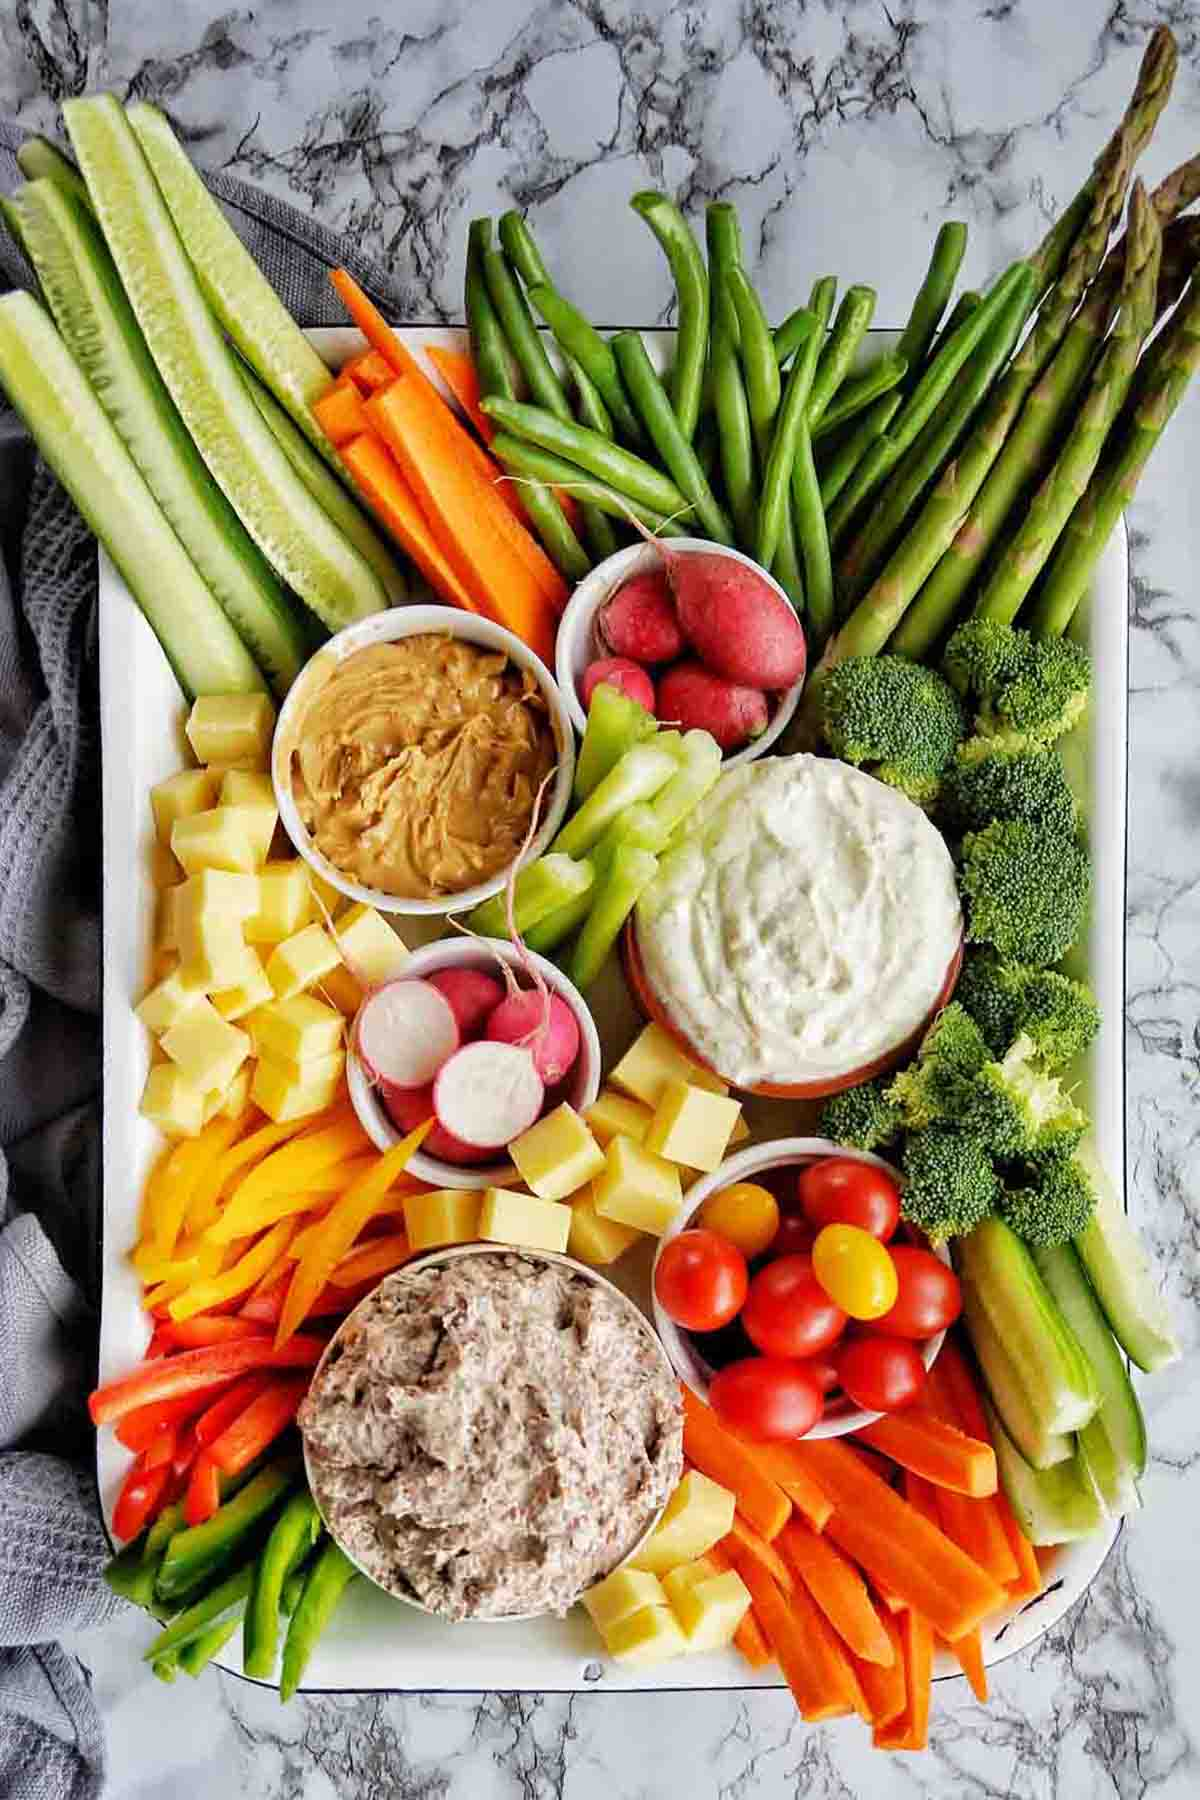 Crudites with dips and cheese in large white platter